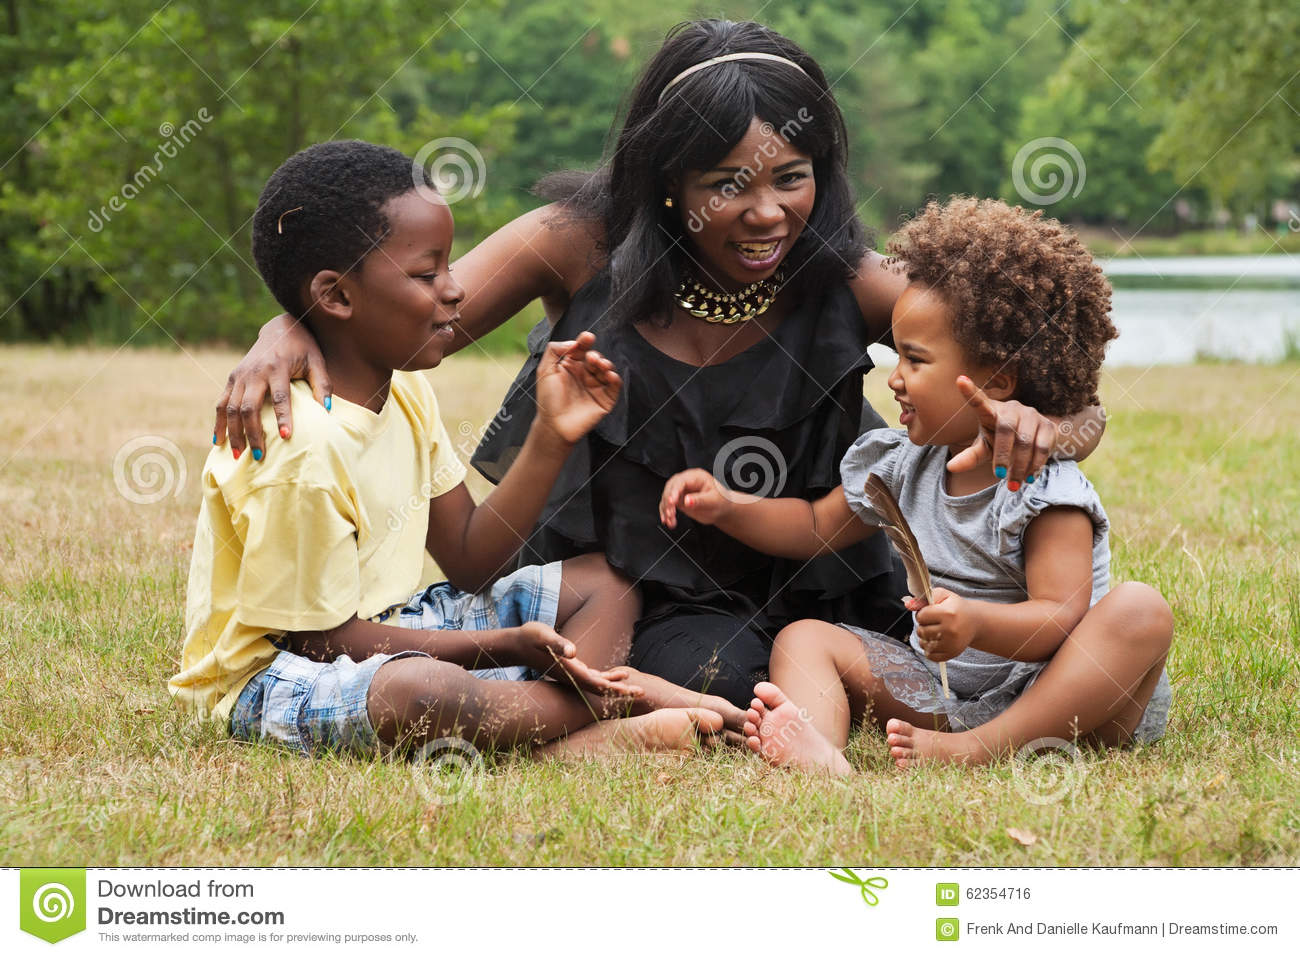 Mom and kids in nature